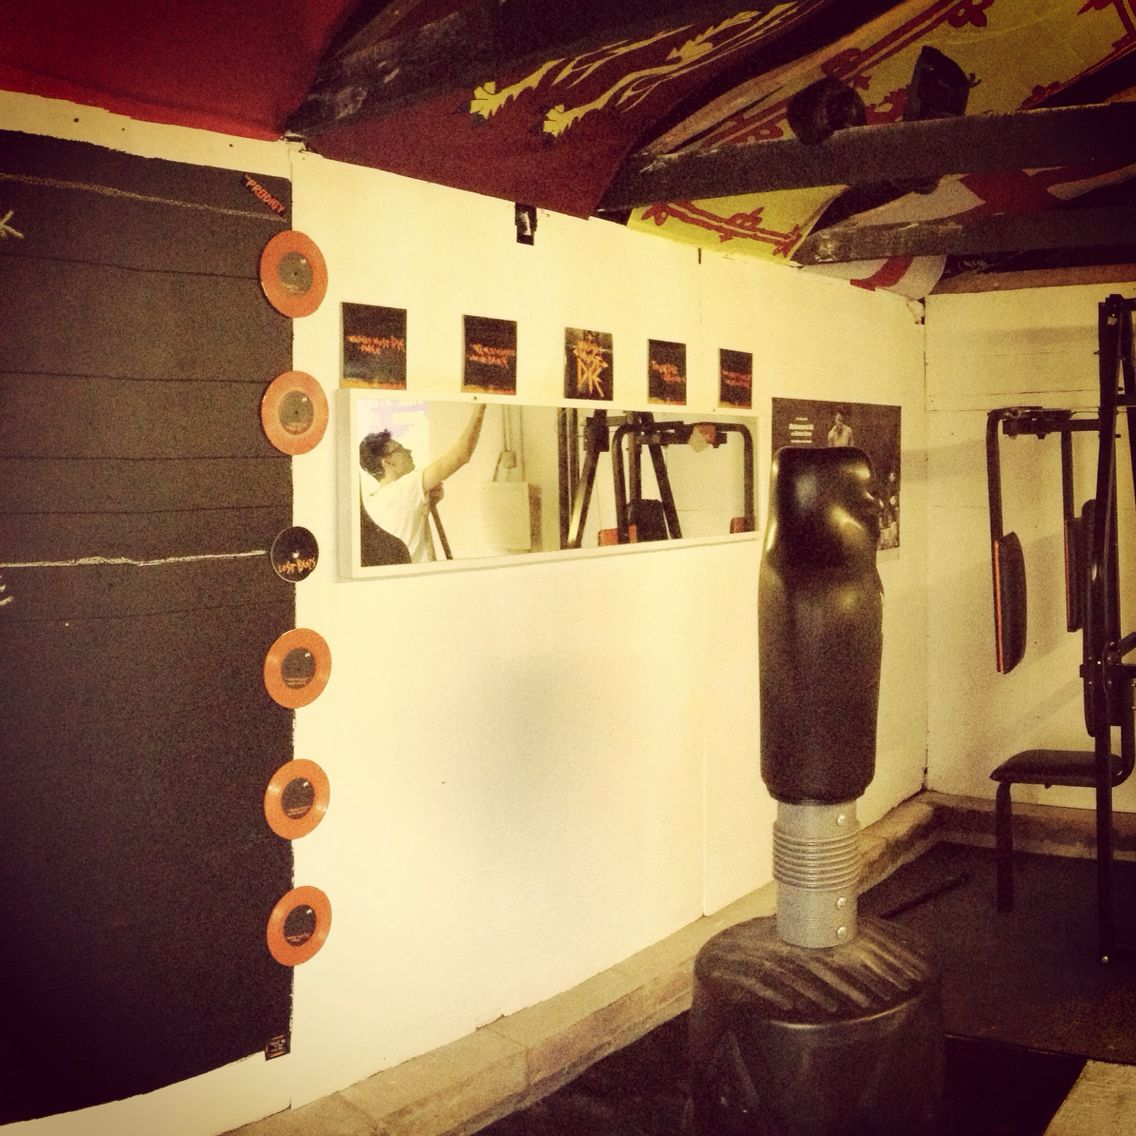 The prodigy tribute on the garage gym wall along with some chalkboa ...